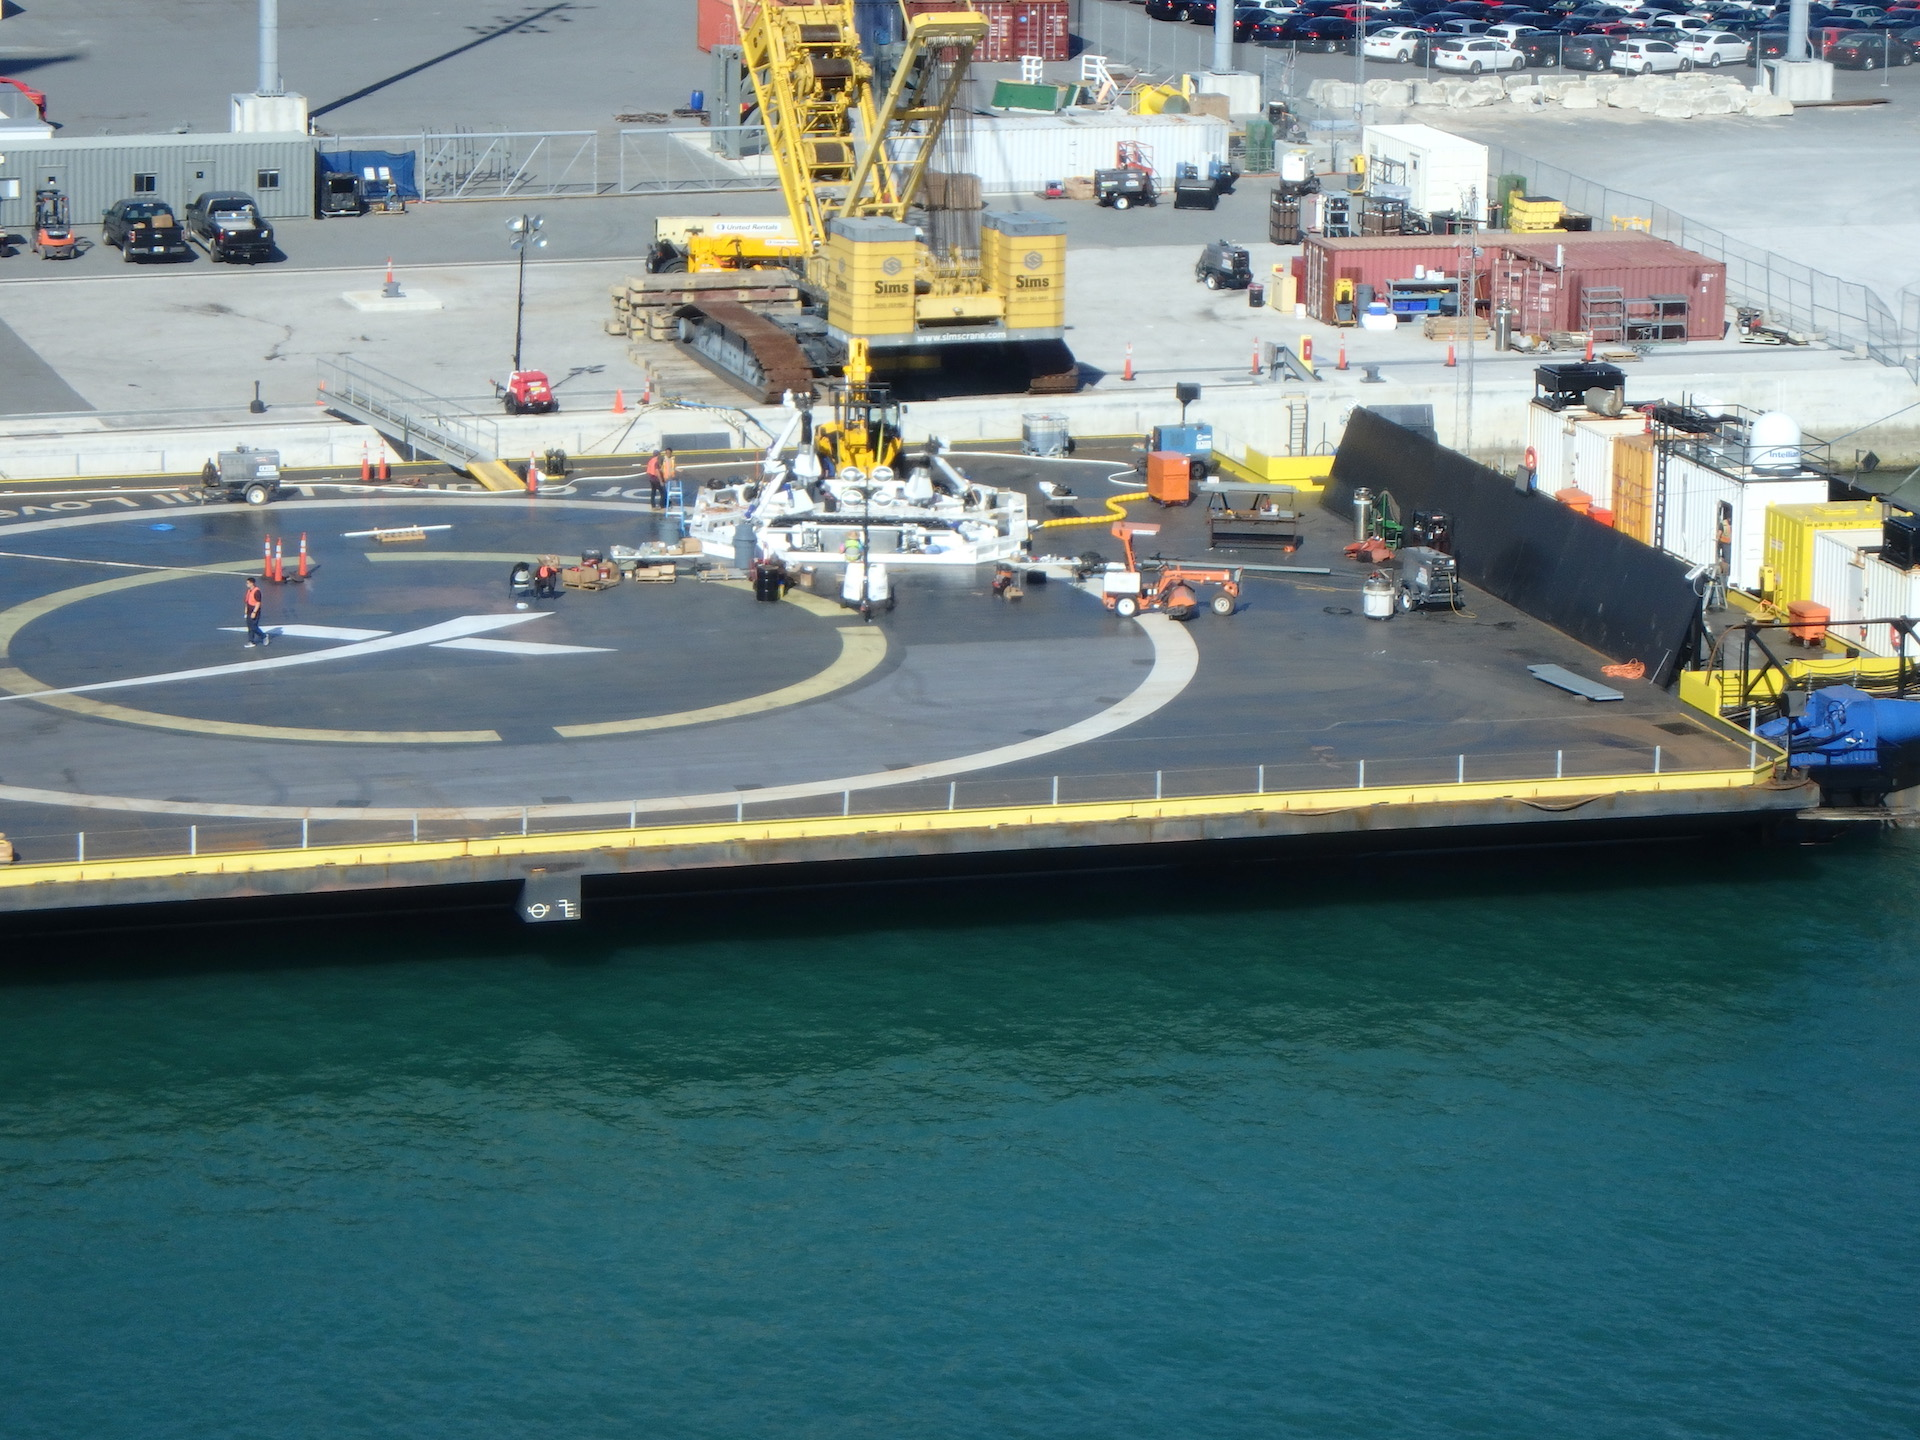 SpaceX-OCISLY-droneship-robot-optimus-prime-3